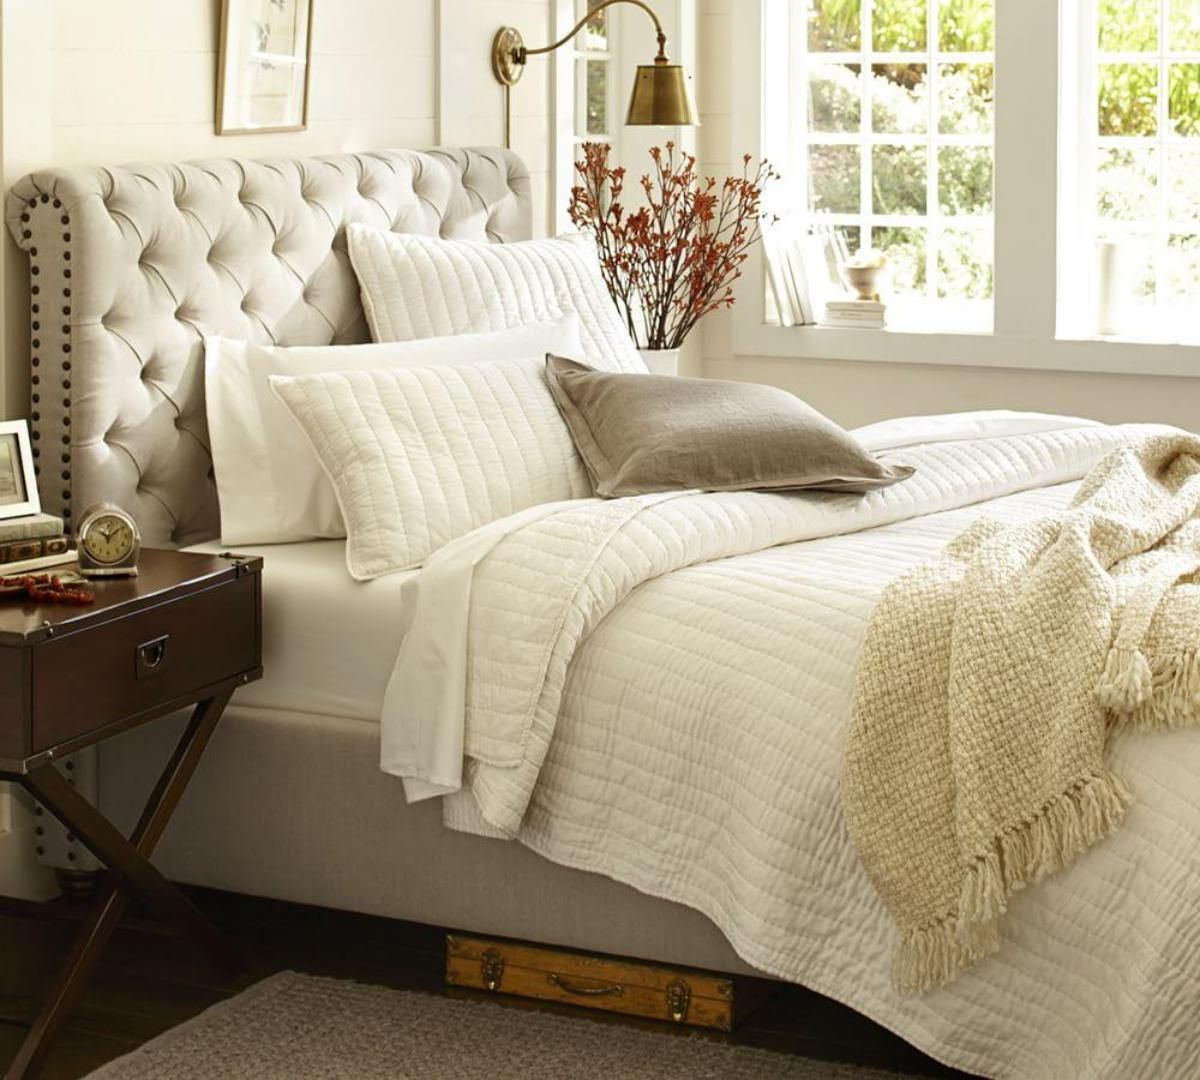 Pottery Barn Bedroom Chesterfield Upholstered Bed Headboard From Pottery Barn Au